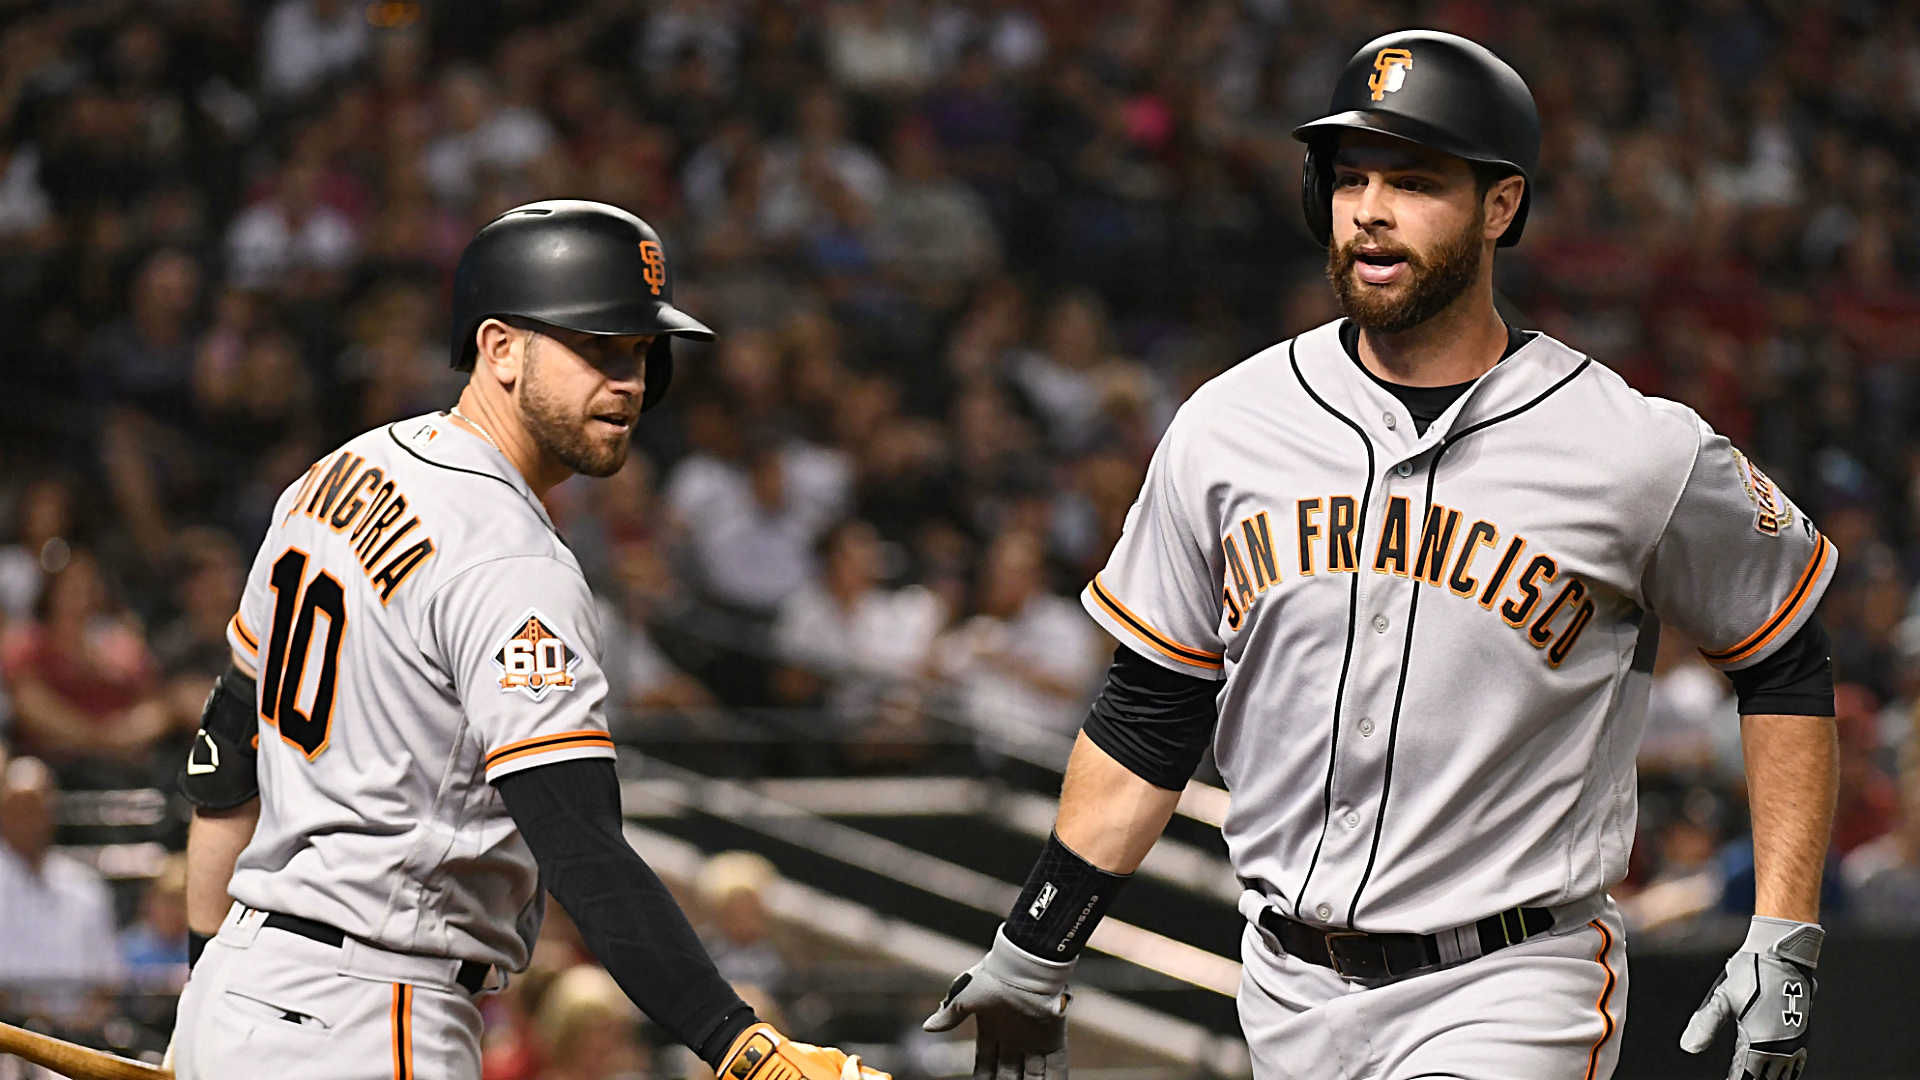 Brandon Belt's Record 21-Pitch At Bat Goes Over 10 Minutes